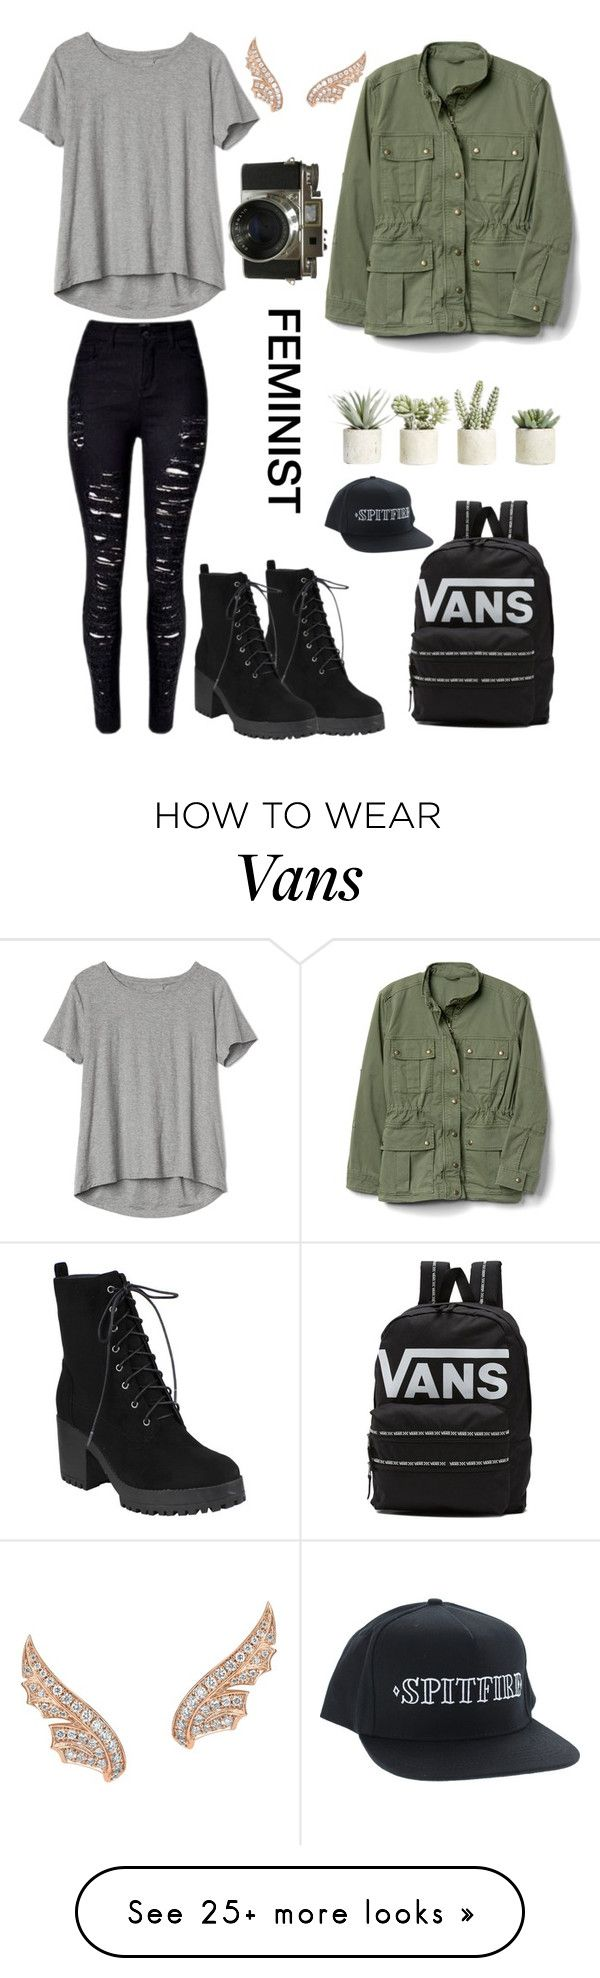 """rebel with a cause"" by bambi1616 on Polyvore featuring Gap, Vans, Allstate Floral, Stephen Webster and MyFaveTshirt"